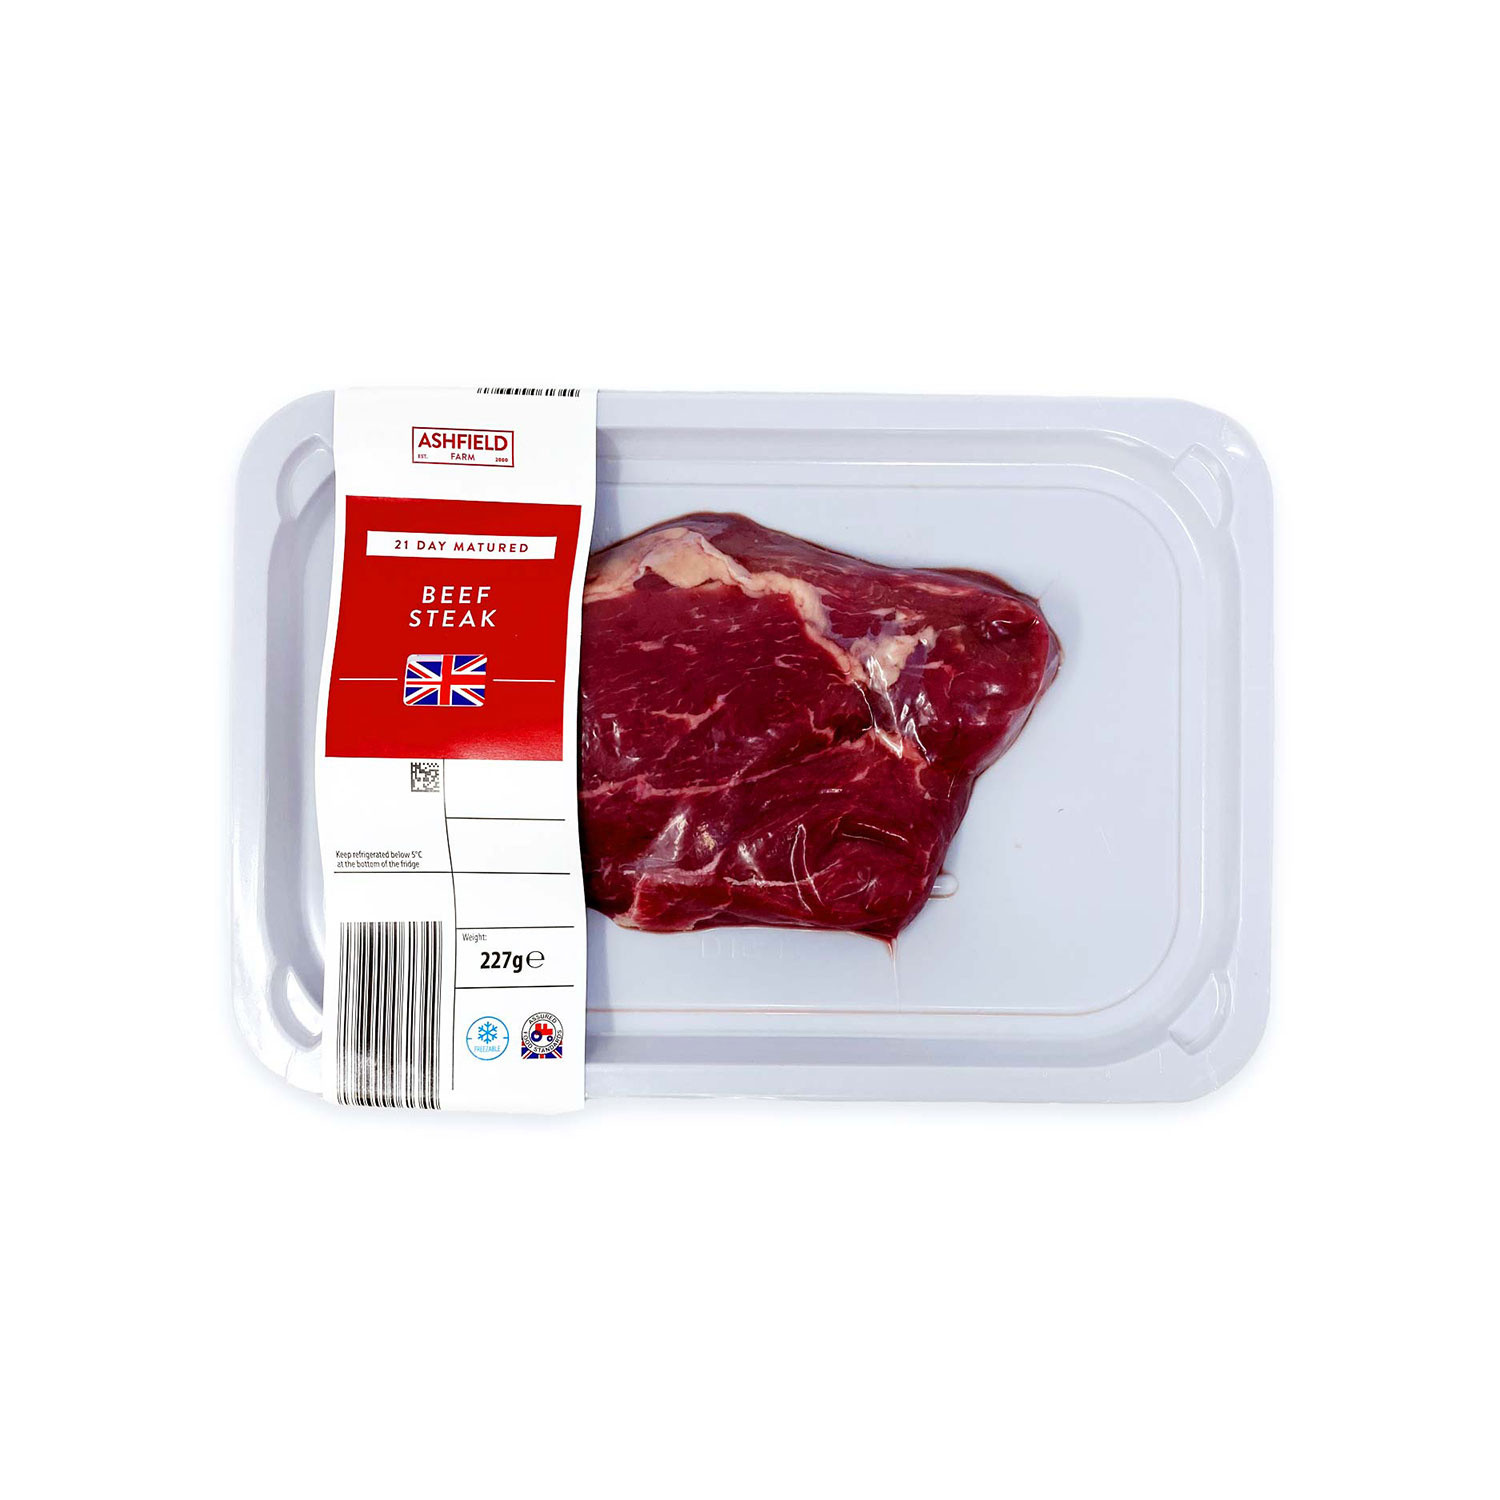 Beef Steak 21 Days Matured